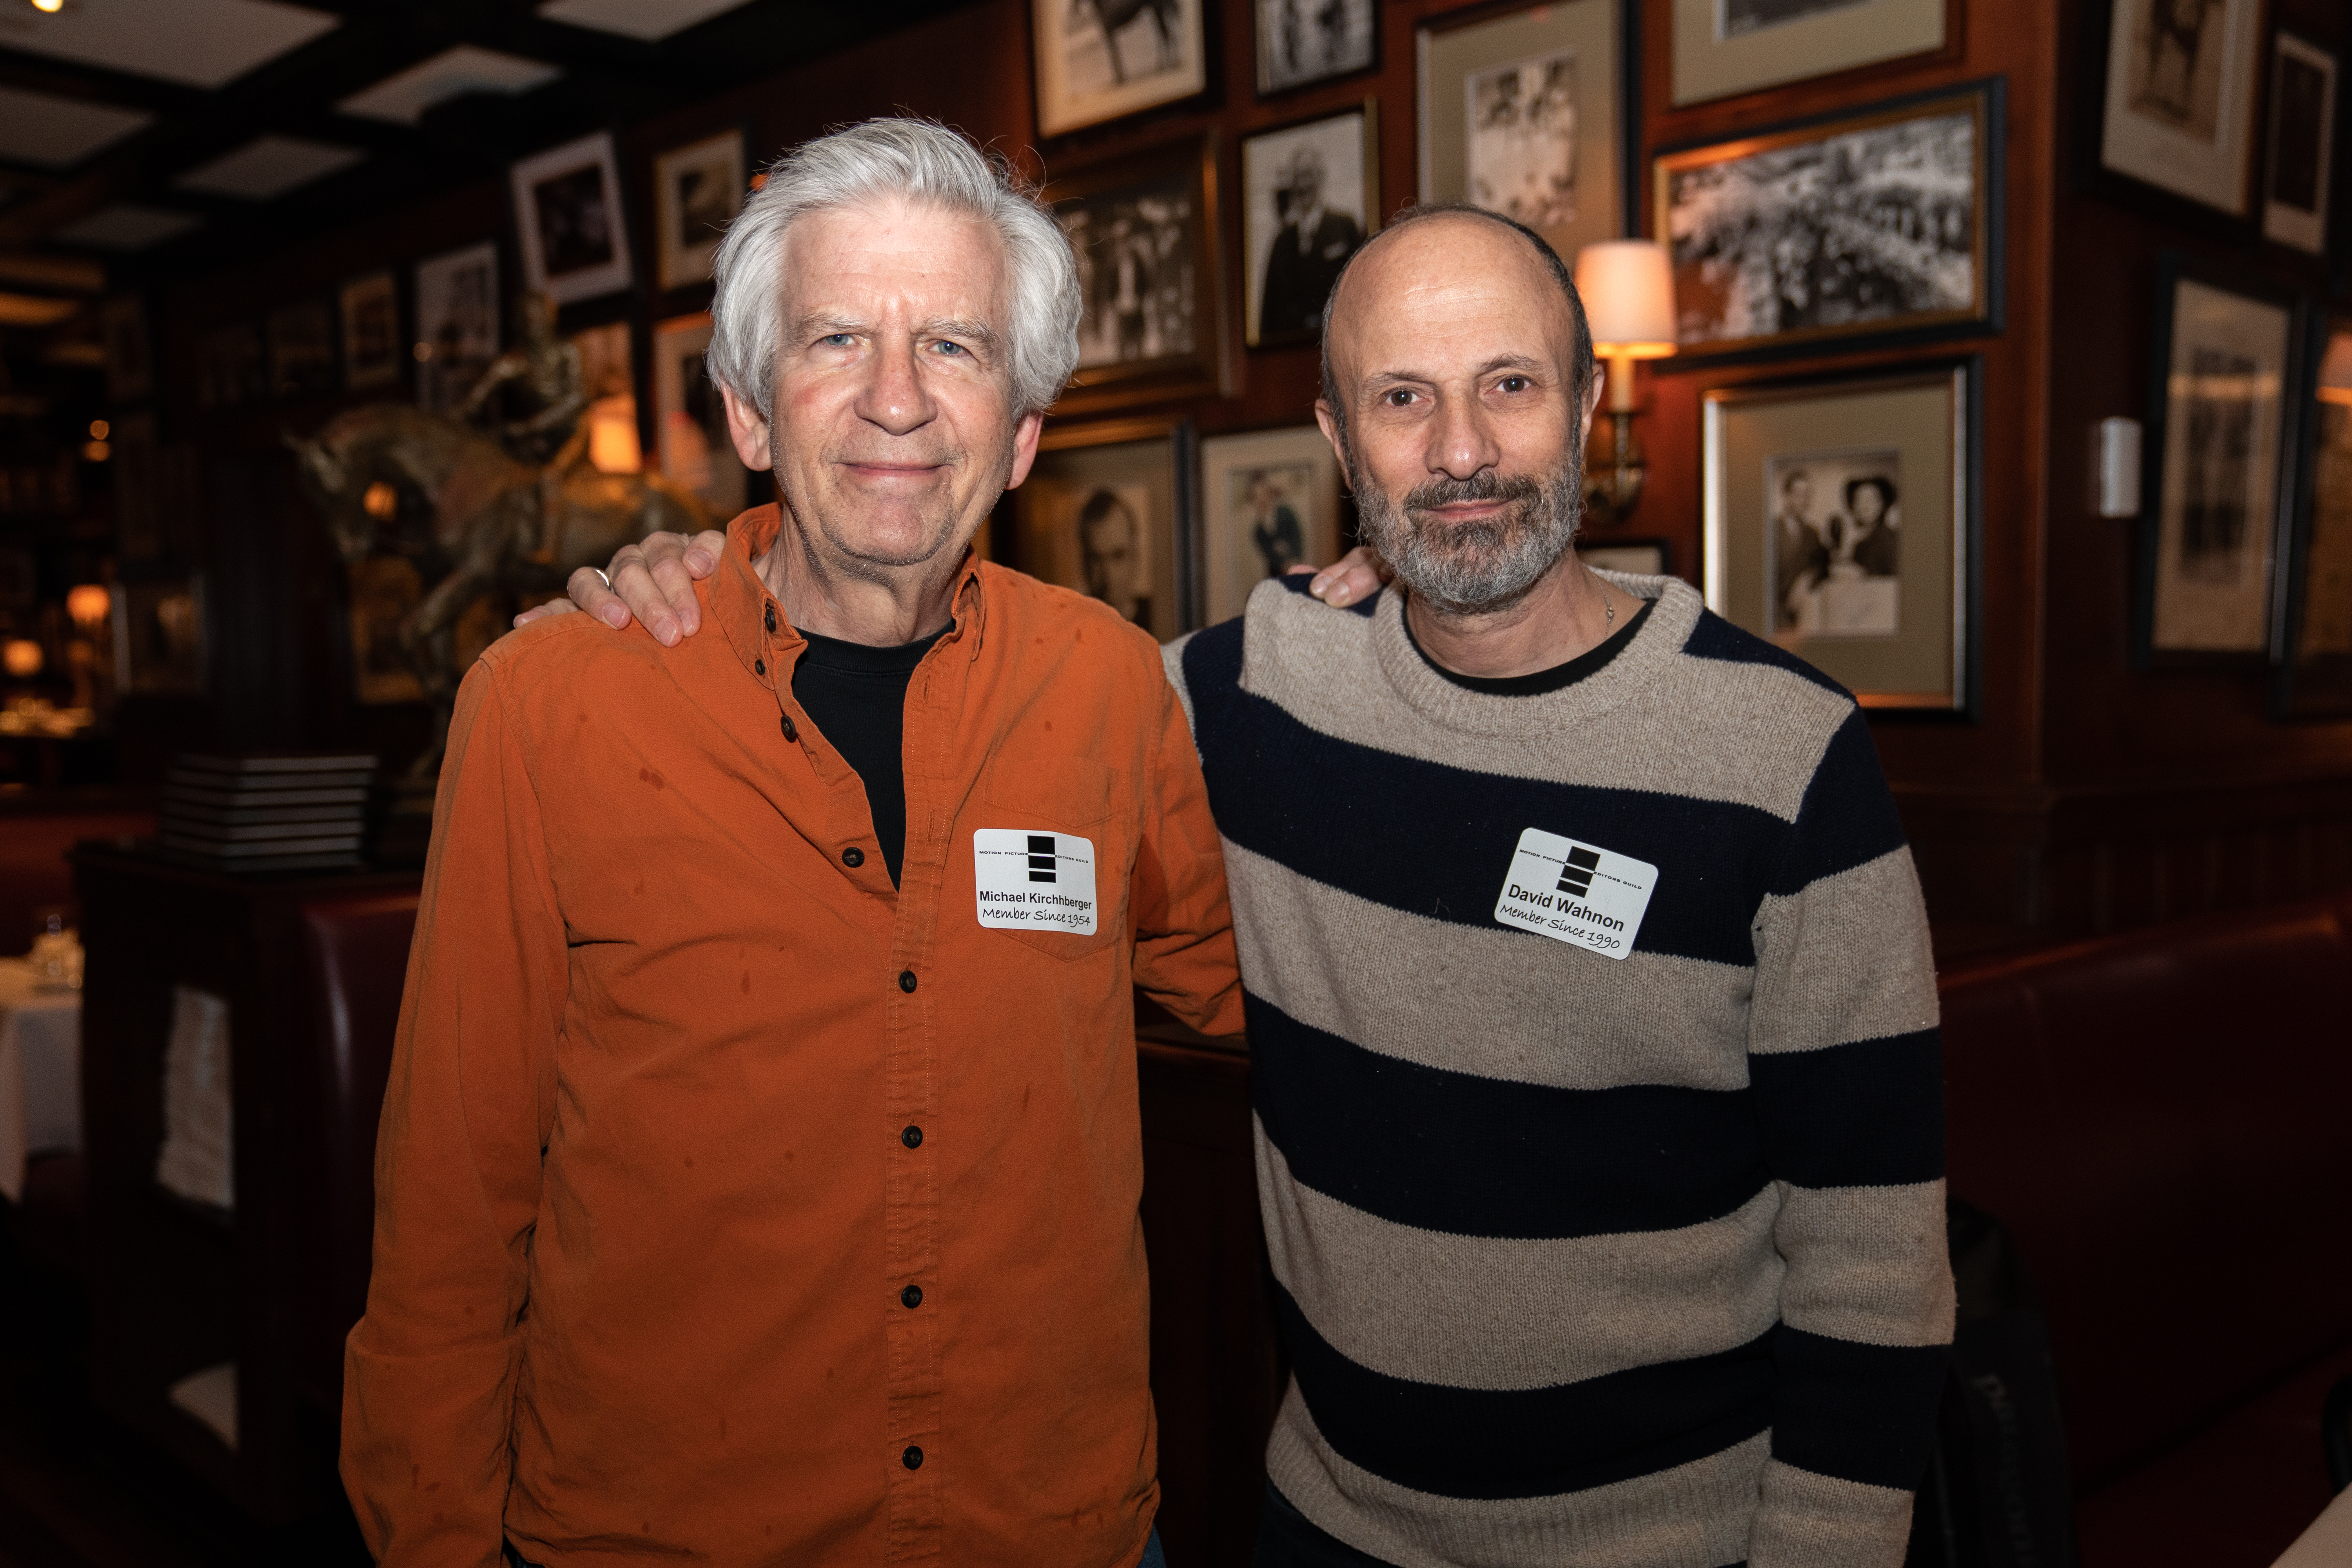 Michael Kirshberger, David Wahnon